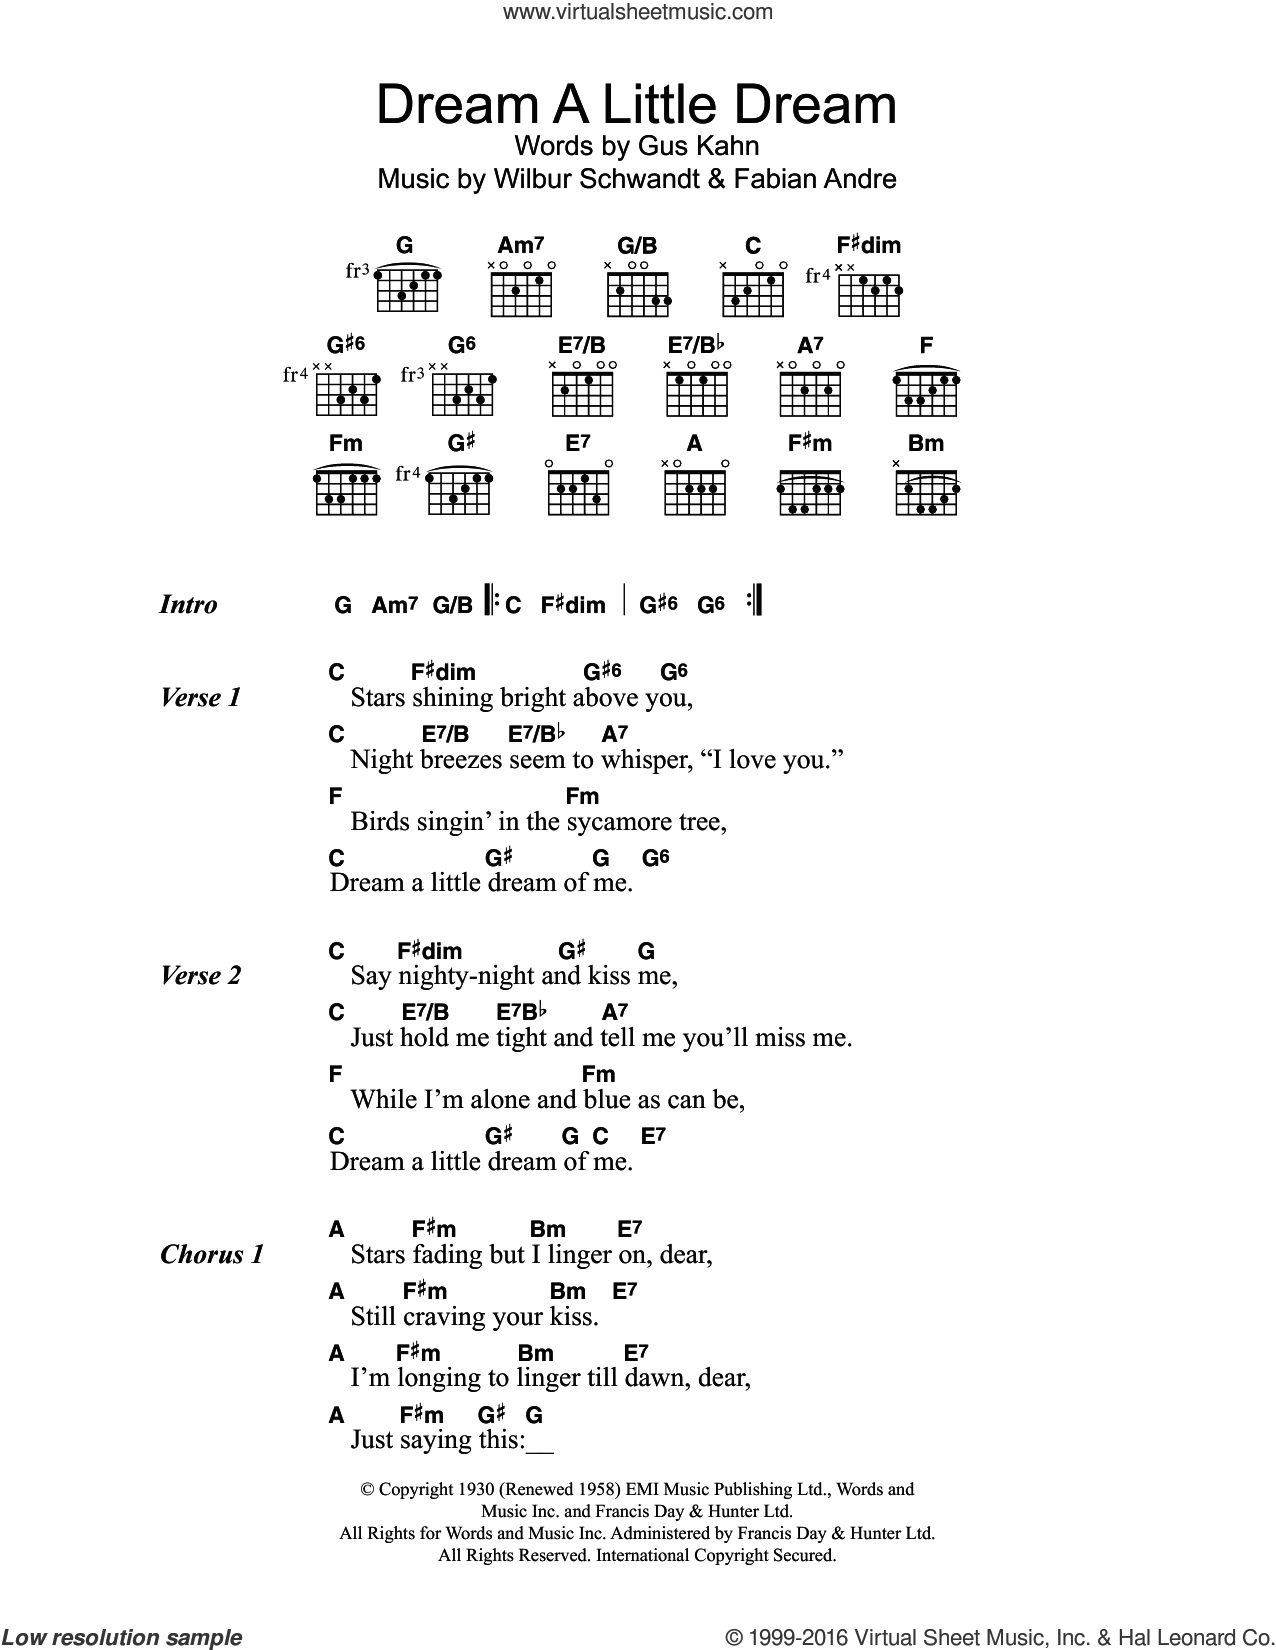 Dream A Little Dream Of Me sheet music for guitar (chords) by The Mamas & The Papas, Mama Cass, Fabian Andre, Gus Kahn and Wilbur Schwandt, intermediate skill level